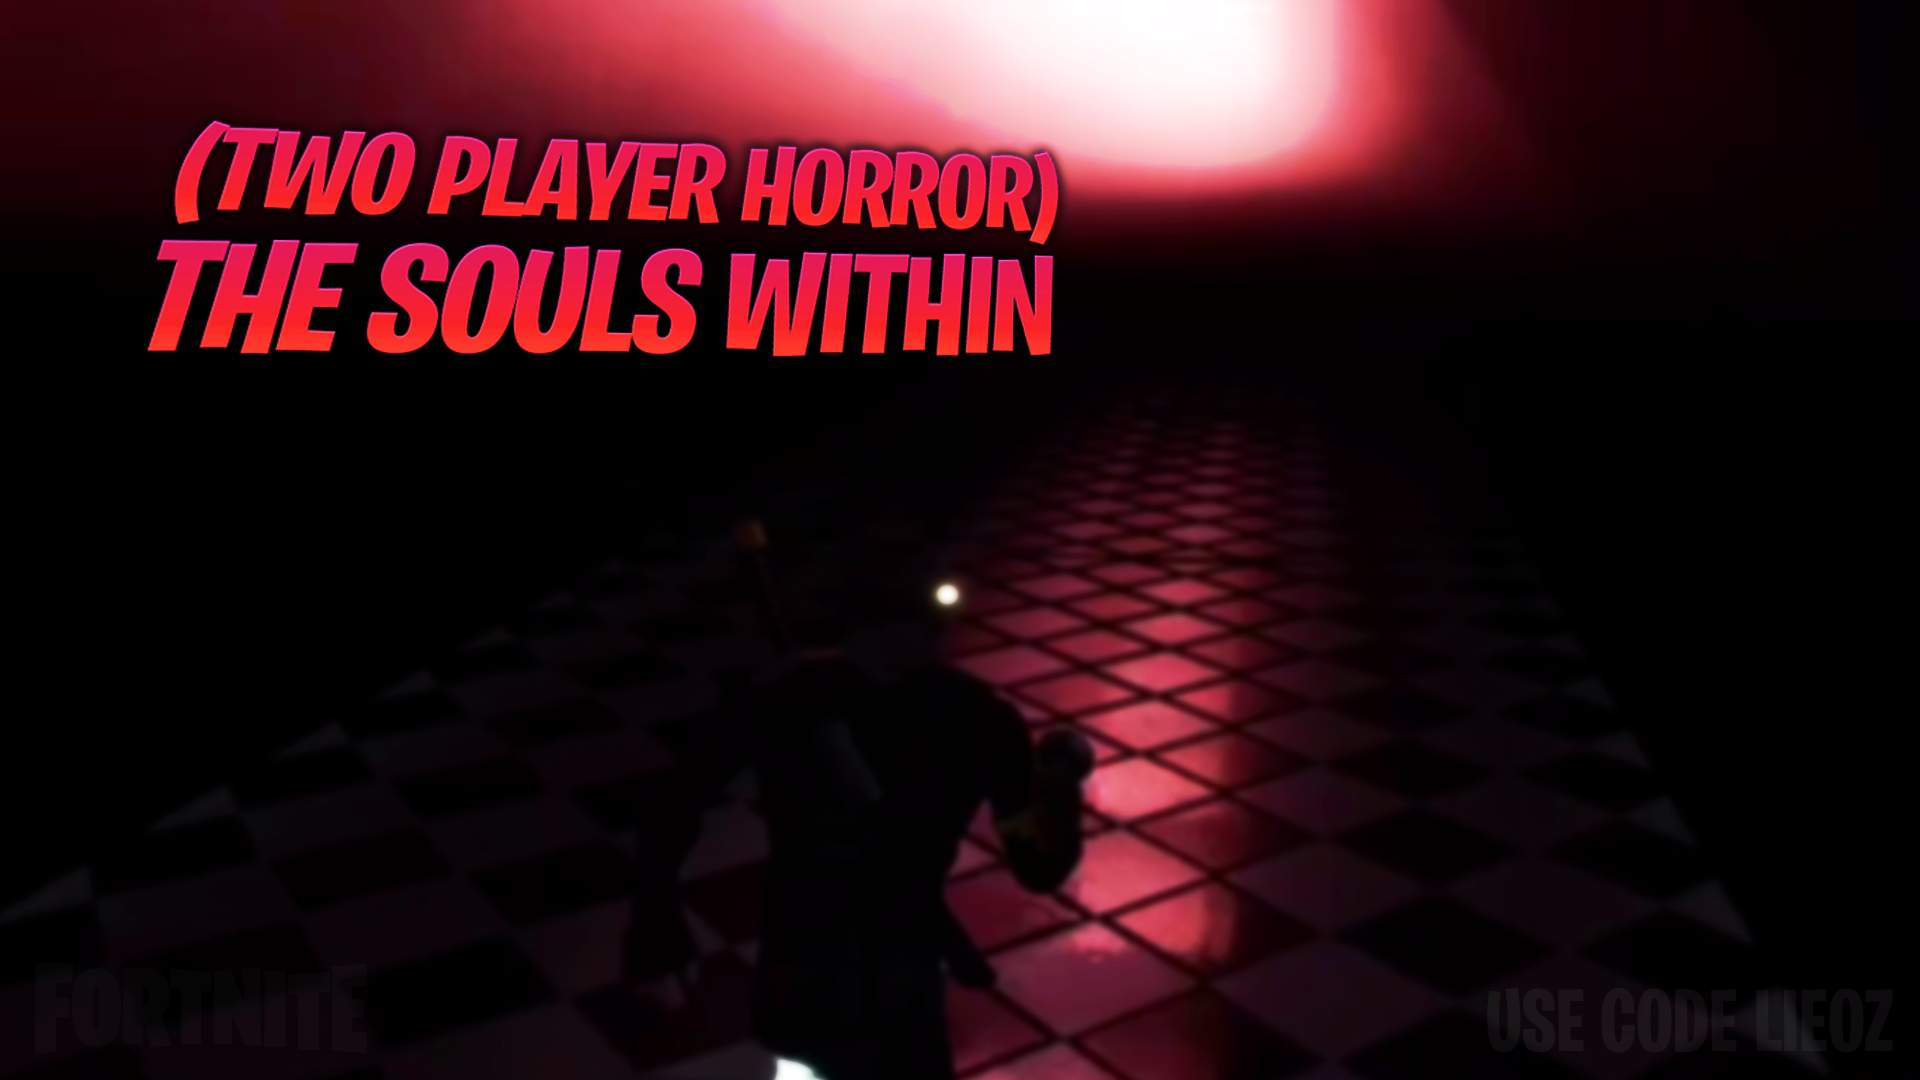 THE SOULS WITHIN (HORROR) DUO